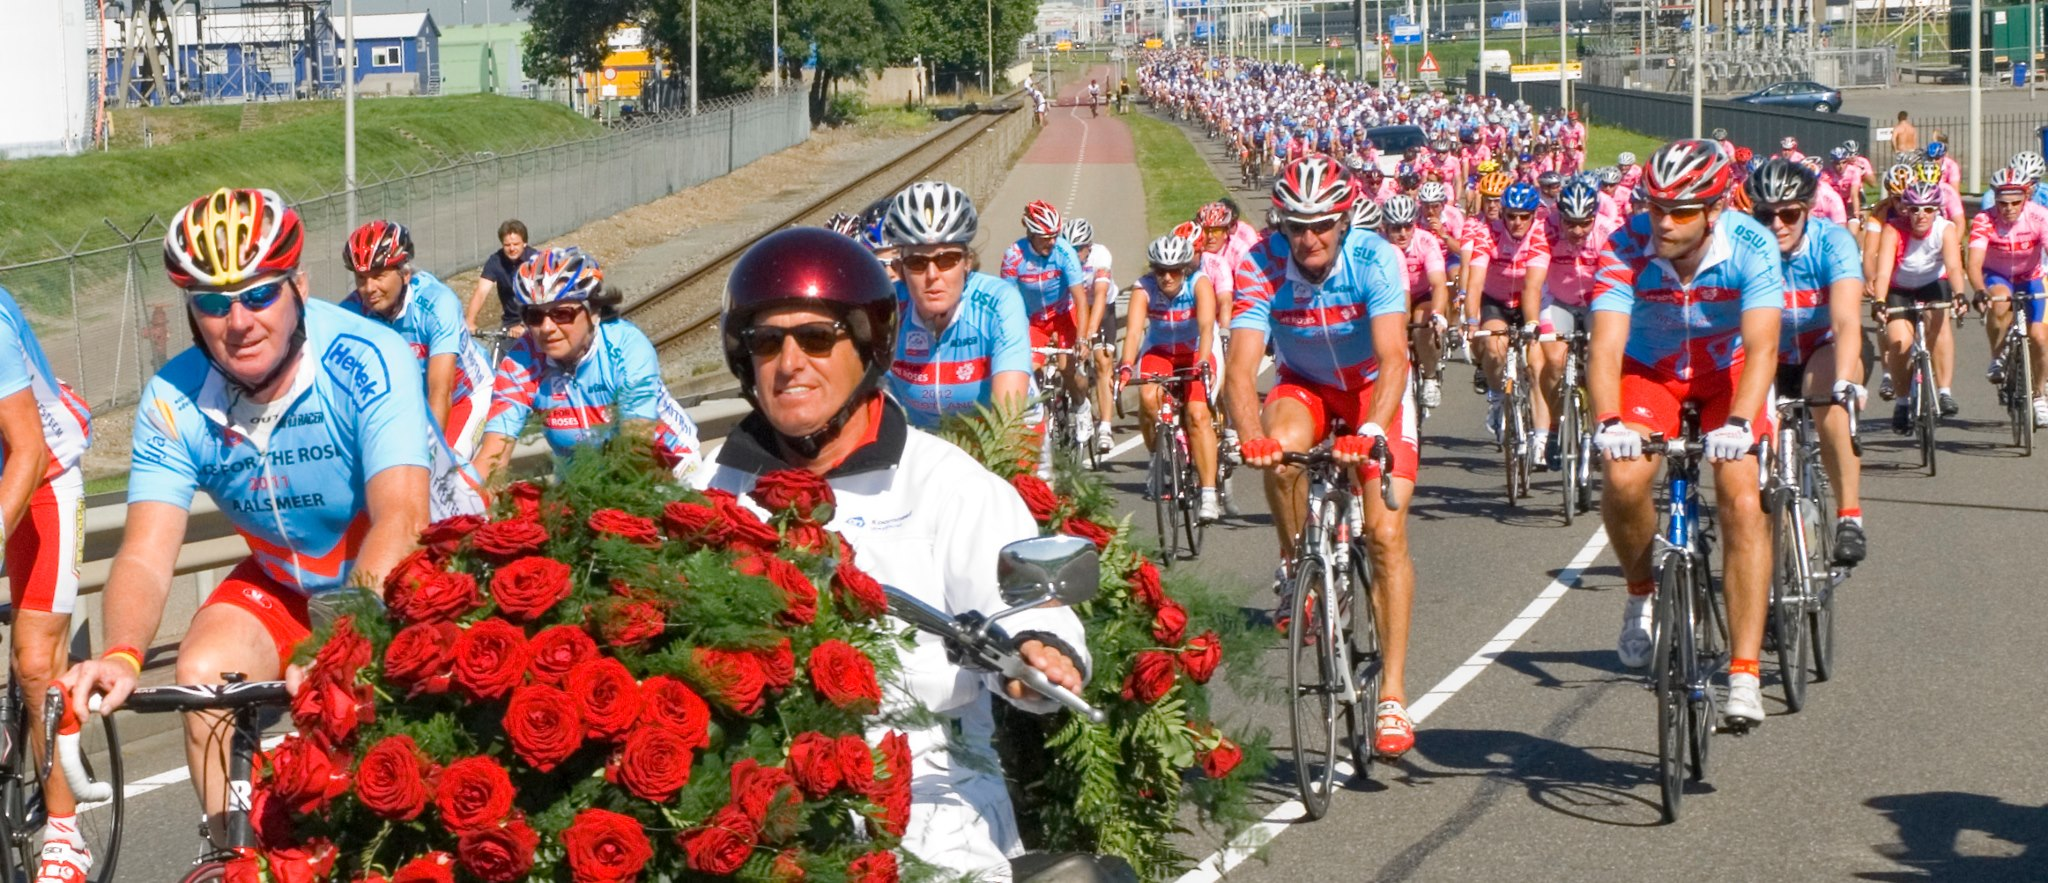 Ride for the Roses